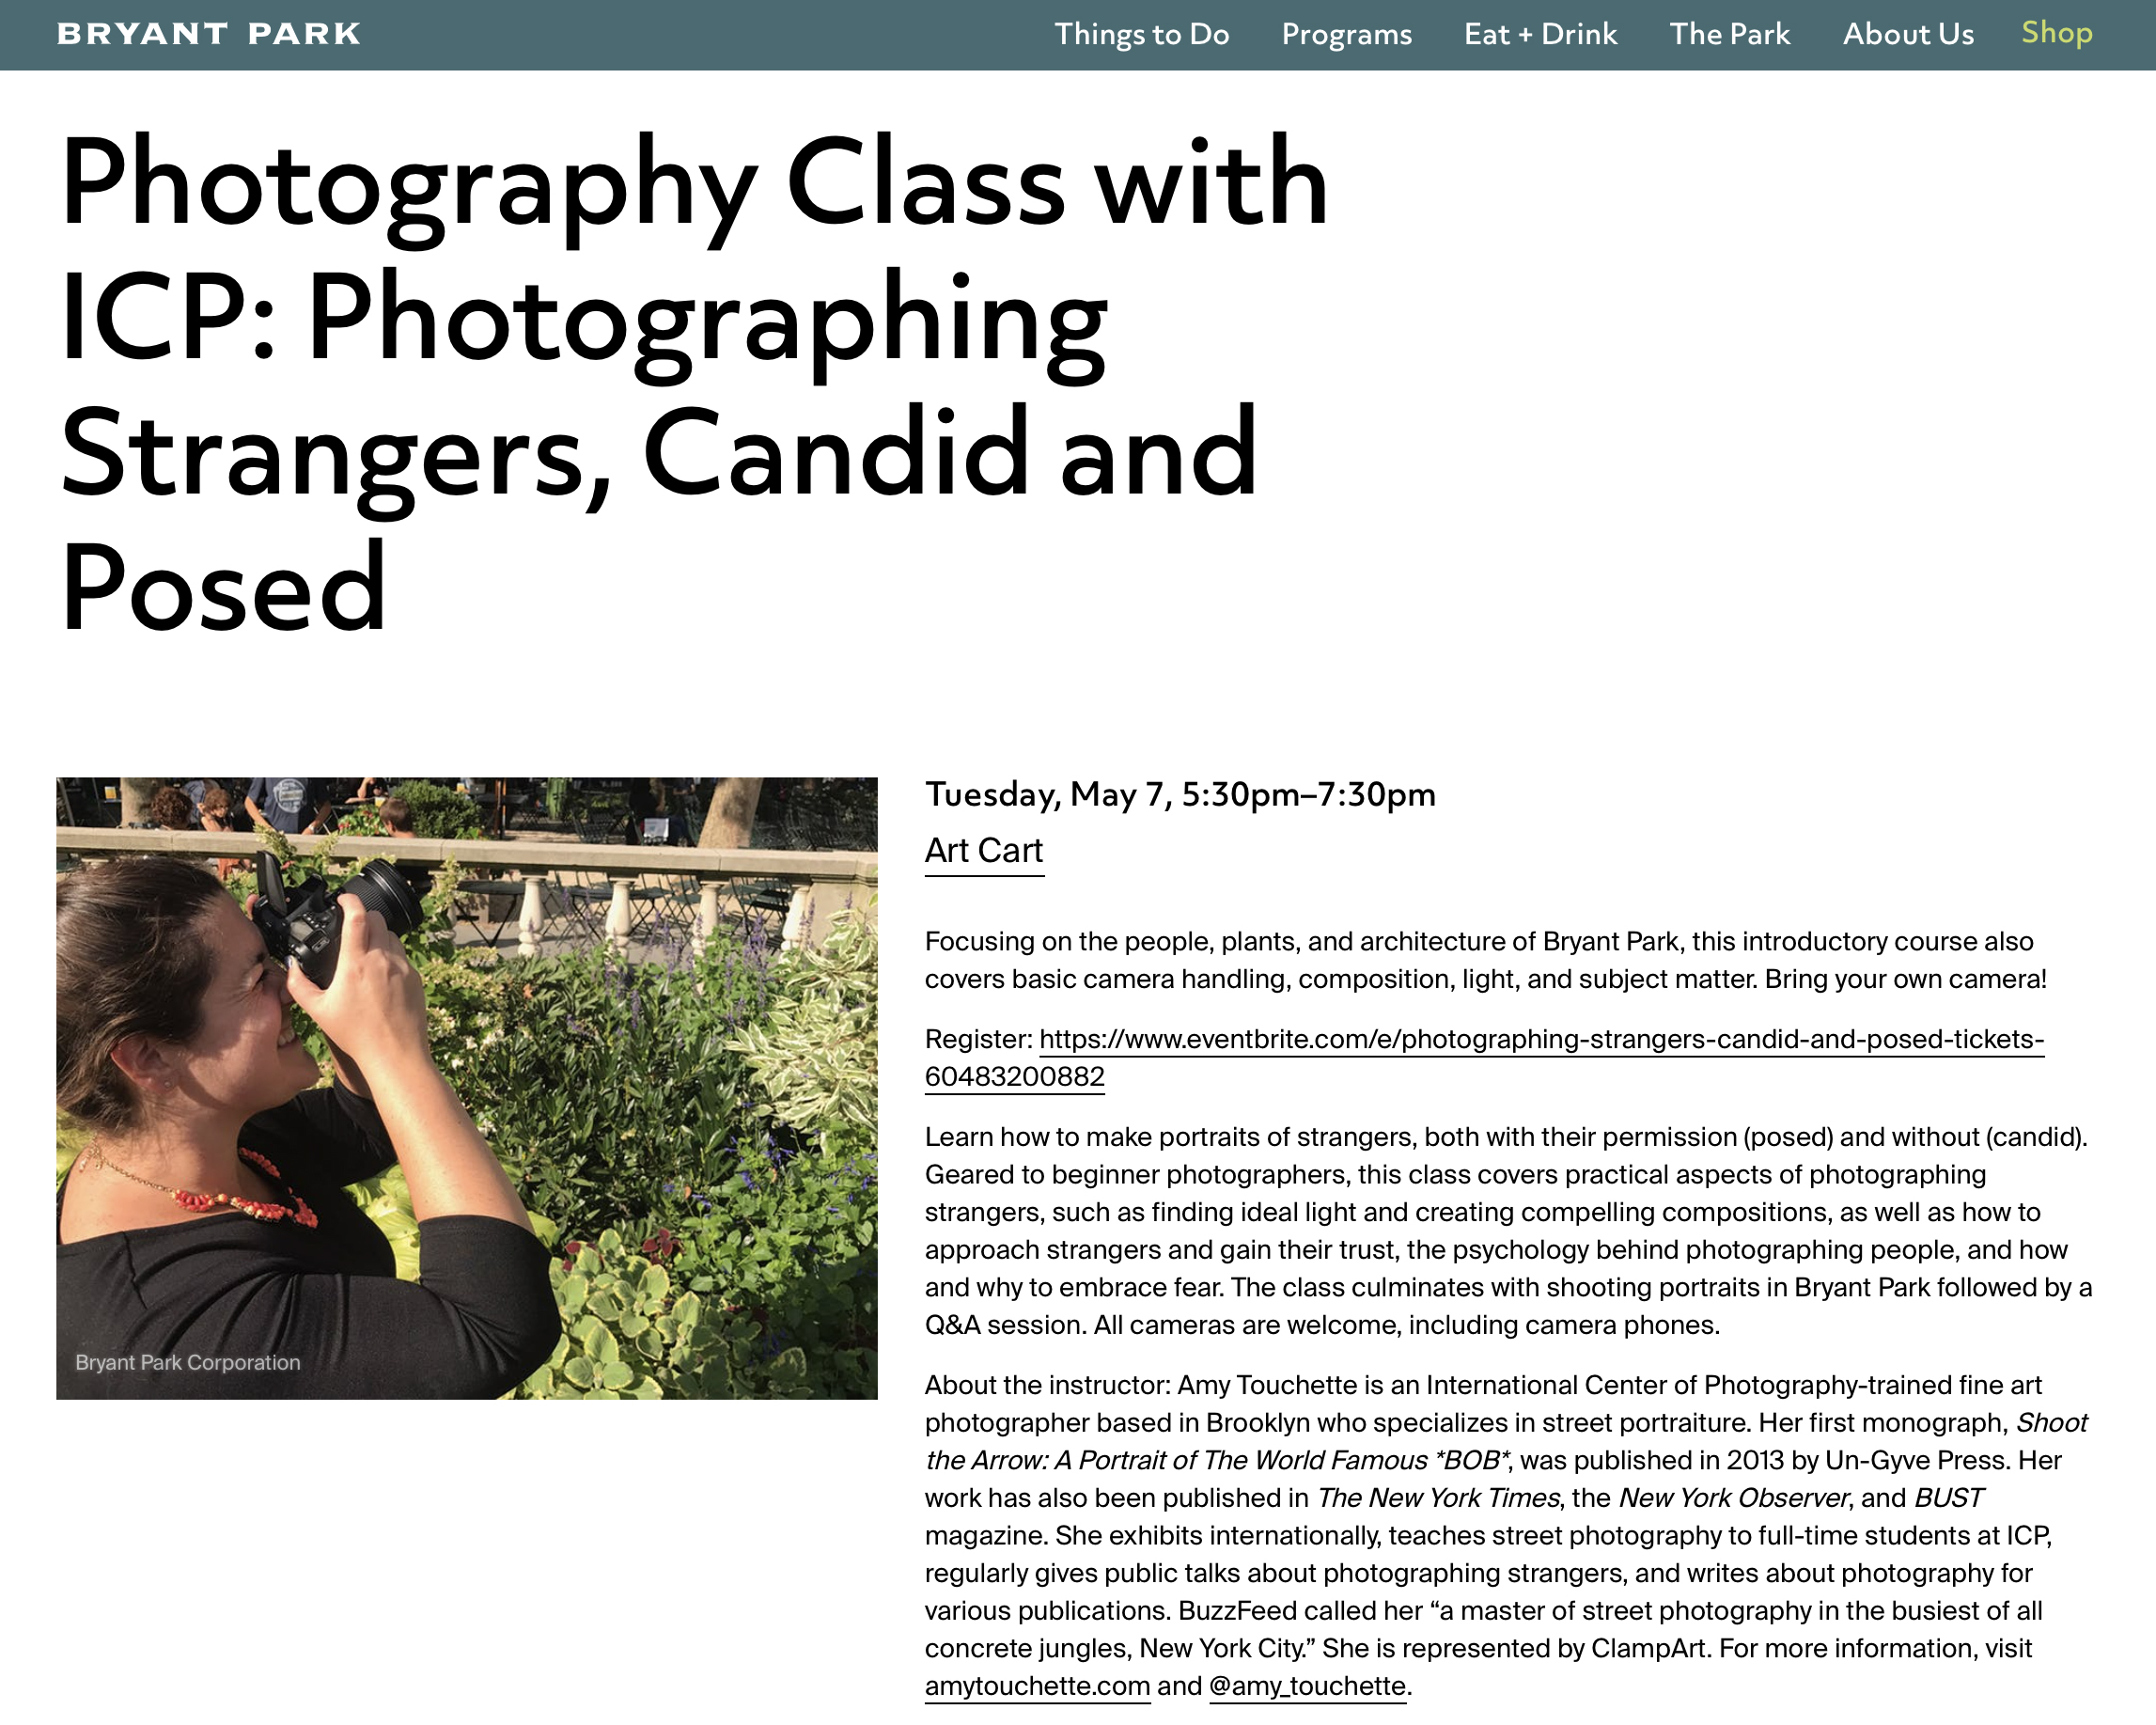 """CLASS""""Photographing Strangers: Candid & Posed,""""Bryant ParkNYC - May 7, 2019, 5:30-7:30pm: Learn how to make portraits of strangers, both with their permission (posed) and without (candid). Geared to beginner photographers, this class covers practical aspects of photographing strangers, such as finding ideal light and creating compelling compositions, as well as how to approach strangers and gain their trust, the psychology behind photographing people, and how and why to embrace fear. The class culminates with shooting portraits in Bryant Park followed by a Q&A session. All cameras are welcome, including camera phones.The class takes place at the Art Cart on the Fifth Avenue Terrace in front of the New York Public Library."""